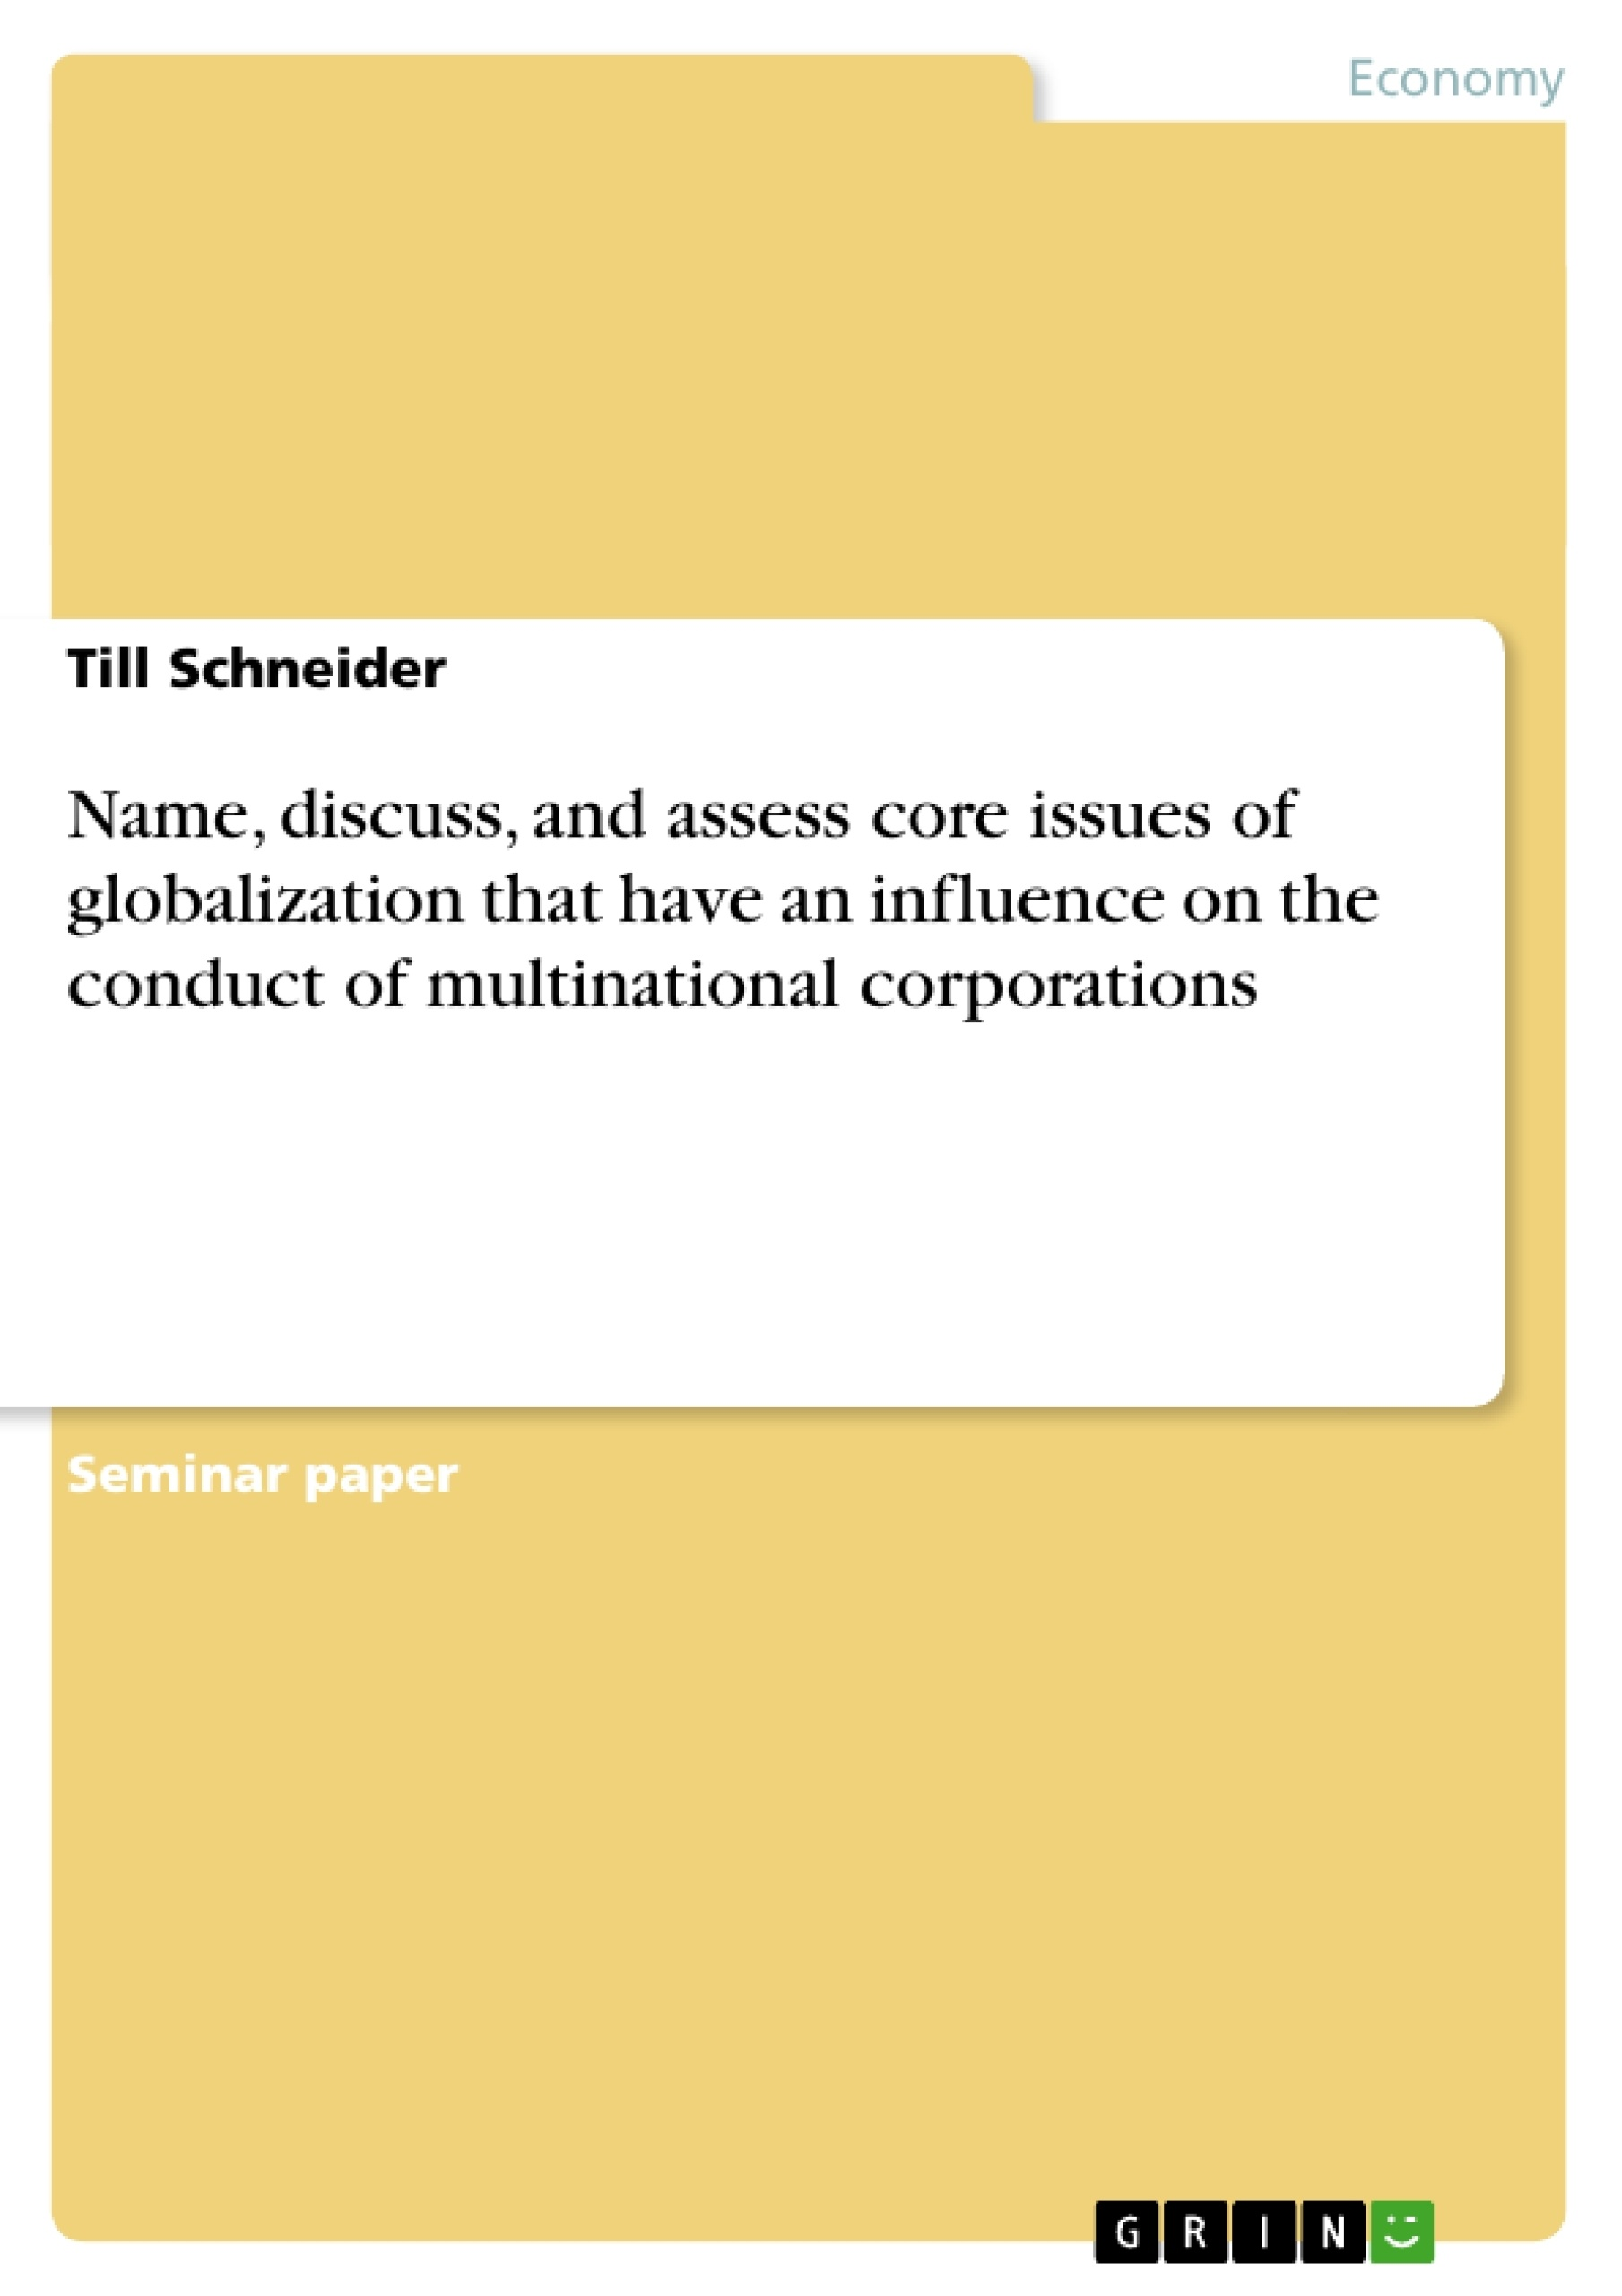 Title: Name, discuss, and assess core issues of globalization that have an influence on the conduct of multinational corporations